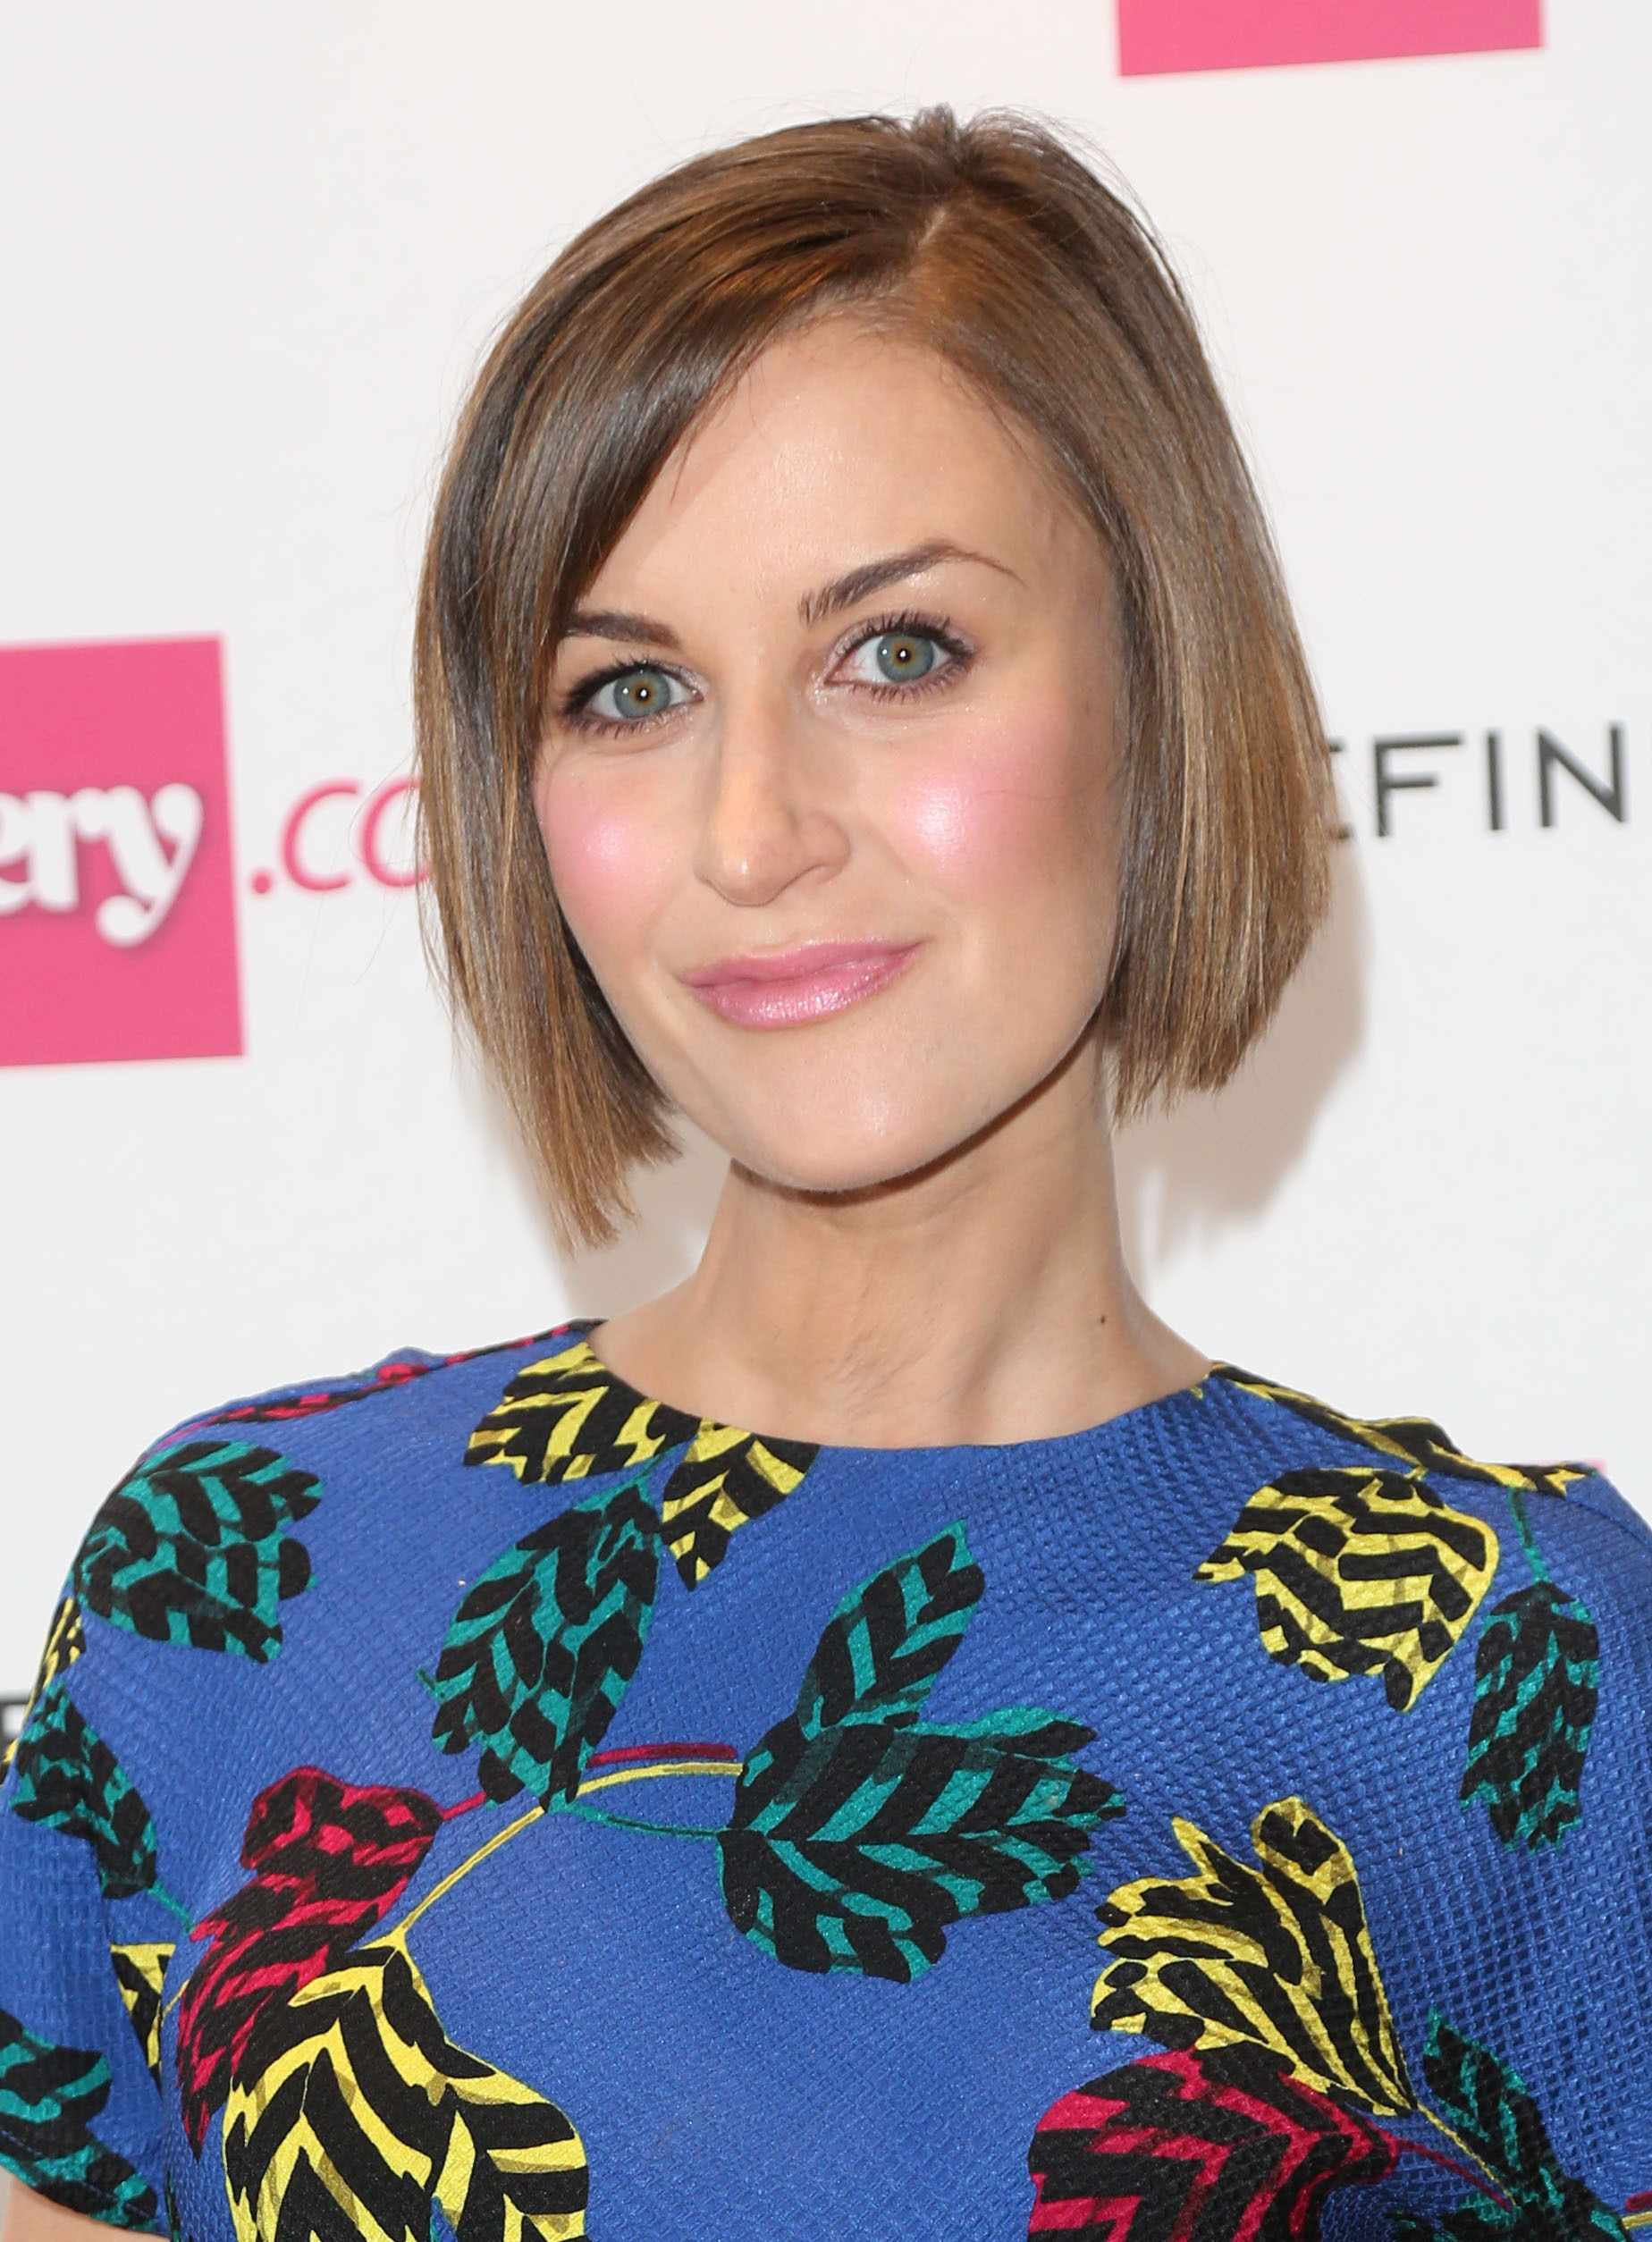 former-corrie-star-katherine-kelly-is-pregnant_49730